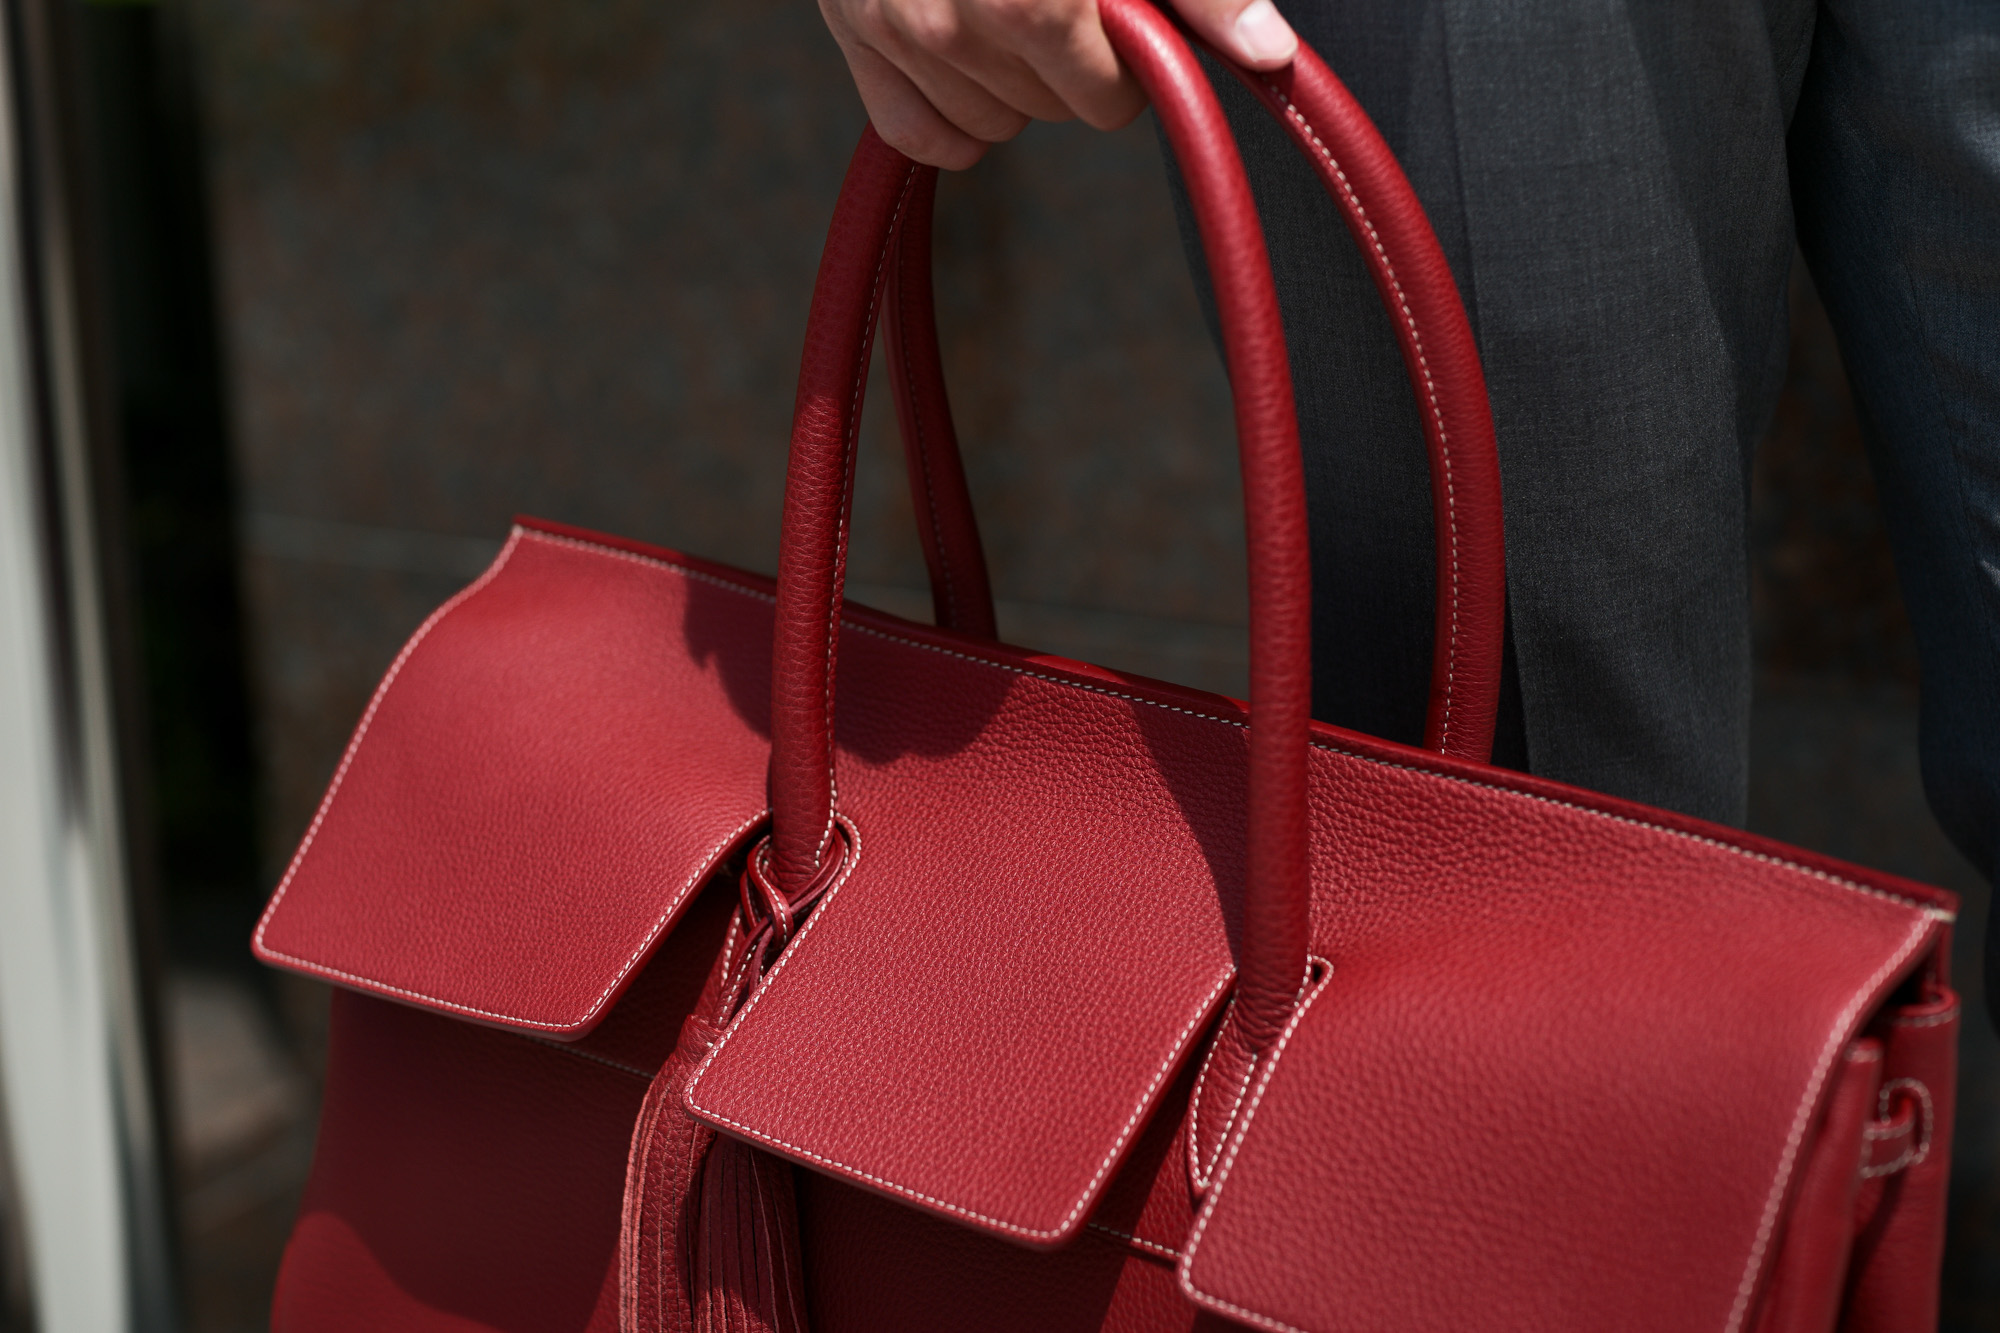 ACATE(アカーテ)OSTRO(オストロ) Montblanc leather(モンブランレザー) トートバック レザーバック ROSSO(ロッソ) MADE IN ITALY(イタリア製) 2019 秋冬新作 愛知 名古屋 altoediritto アルトエデリット